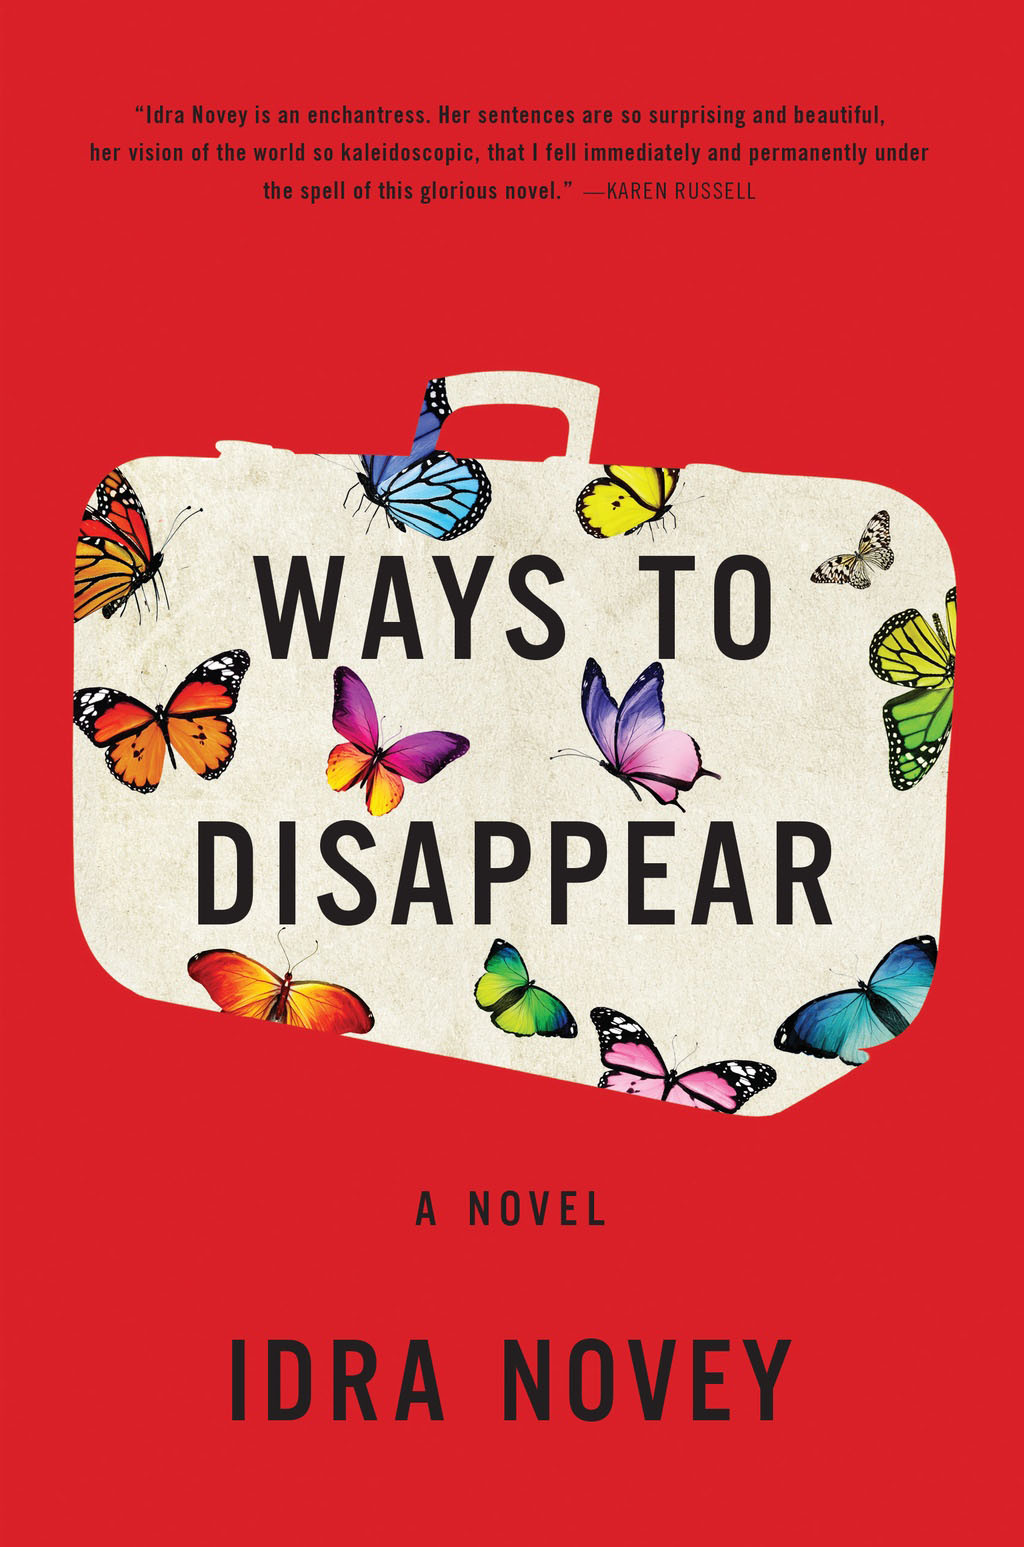 """From the cover of """"Ways to Disappear"""" by Idra Novey"""